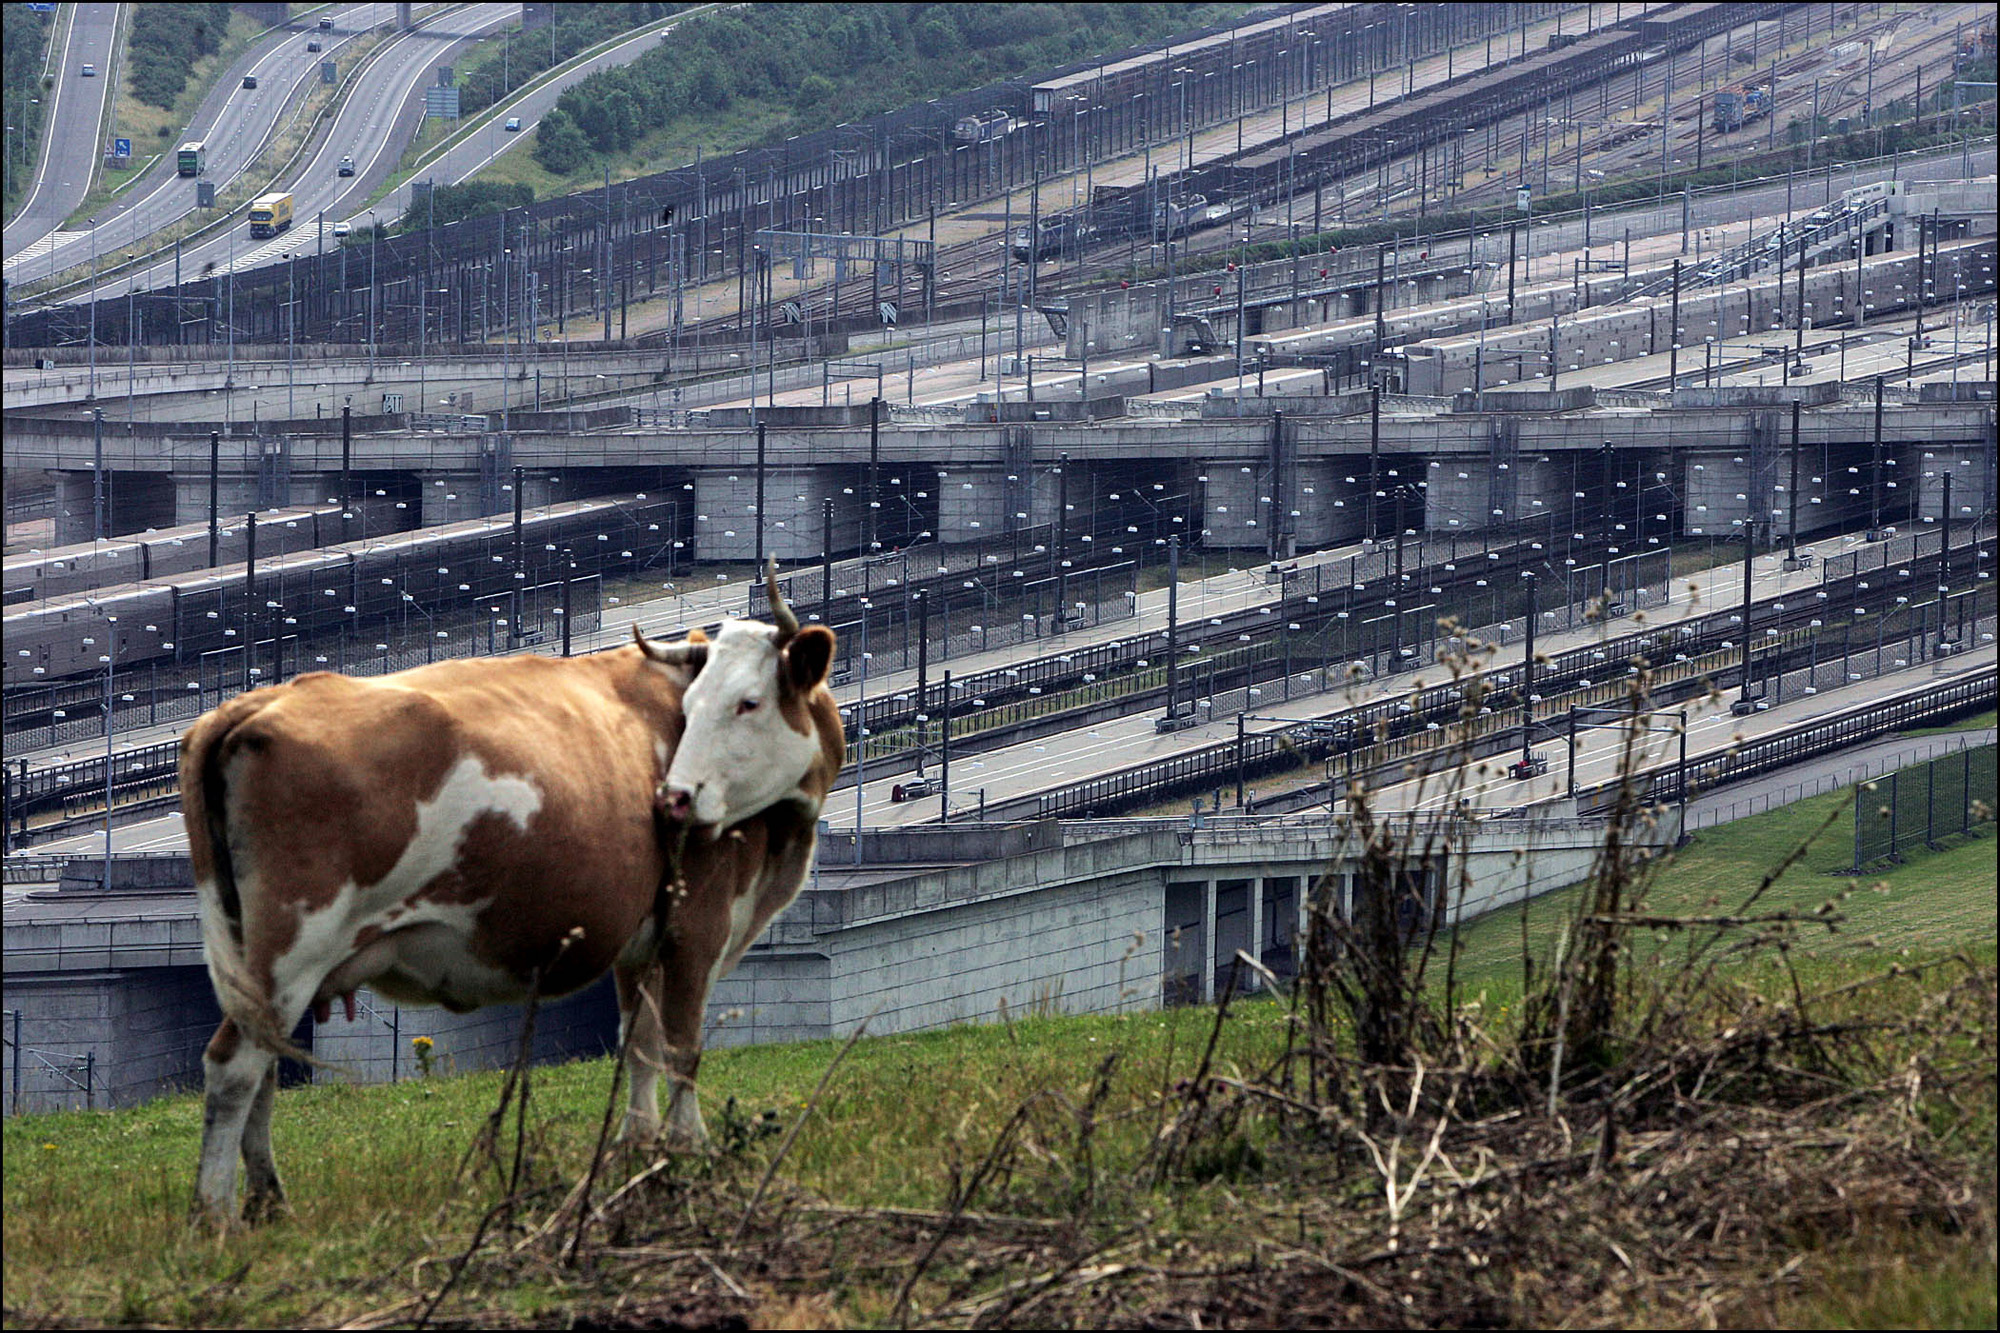 A cow grazes above the Eurotunnel complex near Folkestone, U.K. Saturday, July 24, 2004. Eurotunnel SA, which operates the railway tunnel linking Britain and France, said its first-half loss widened as passenger and freight revenue fell.